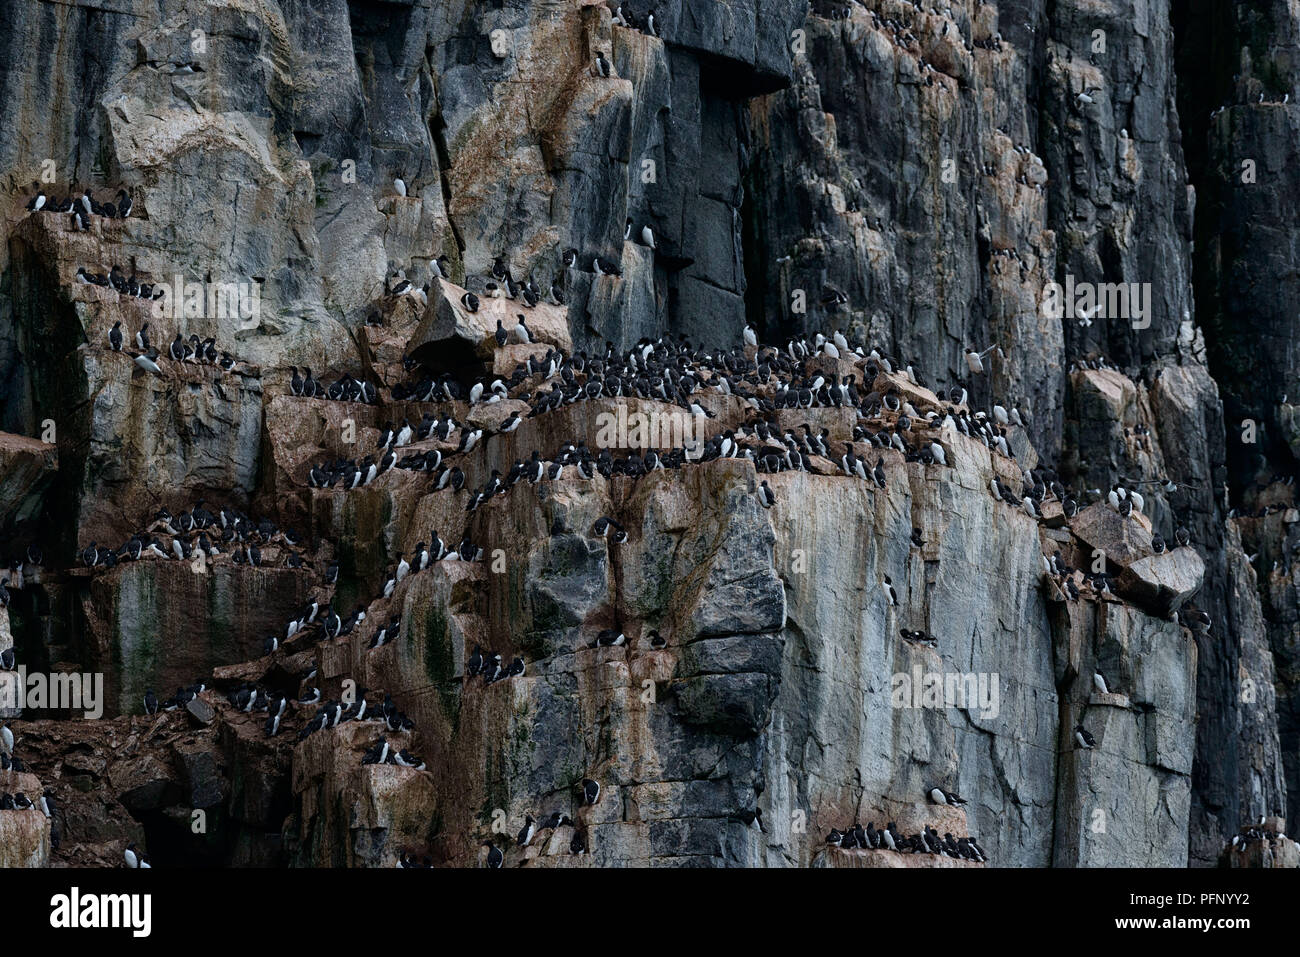 Colony of thick-billed murres at Alkefjellet, Svalbard, Norway Stock Photo